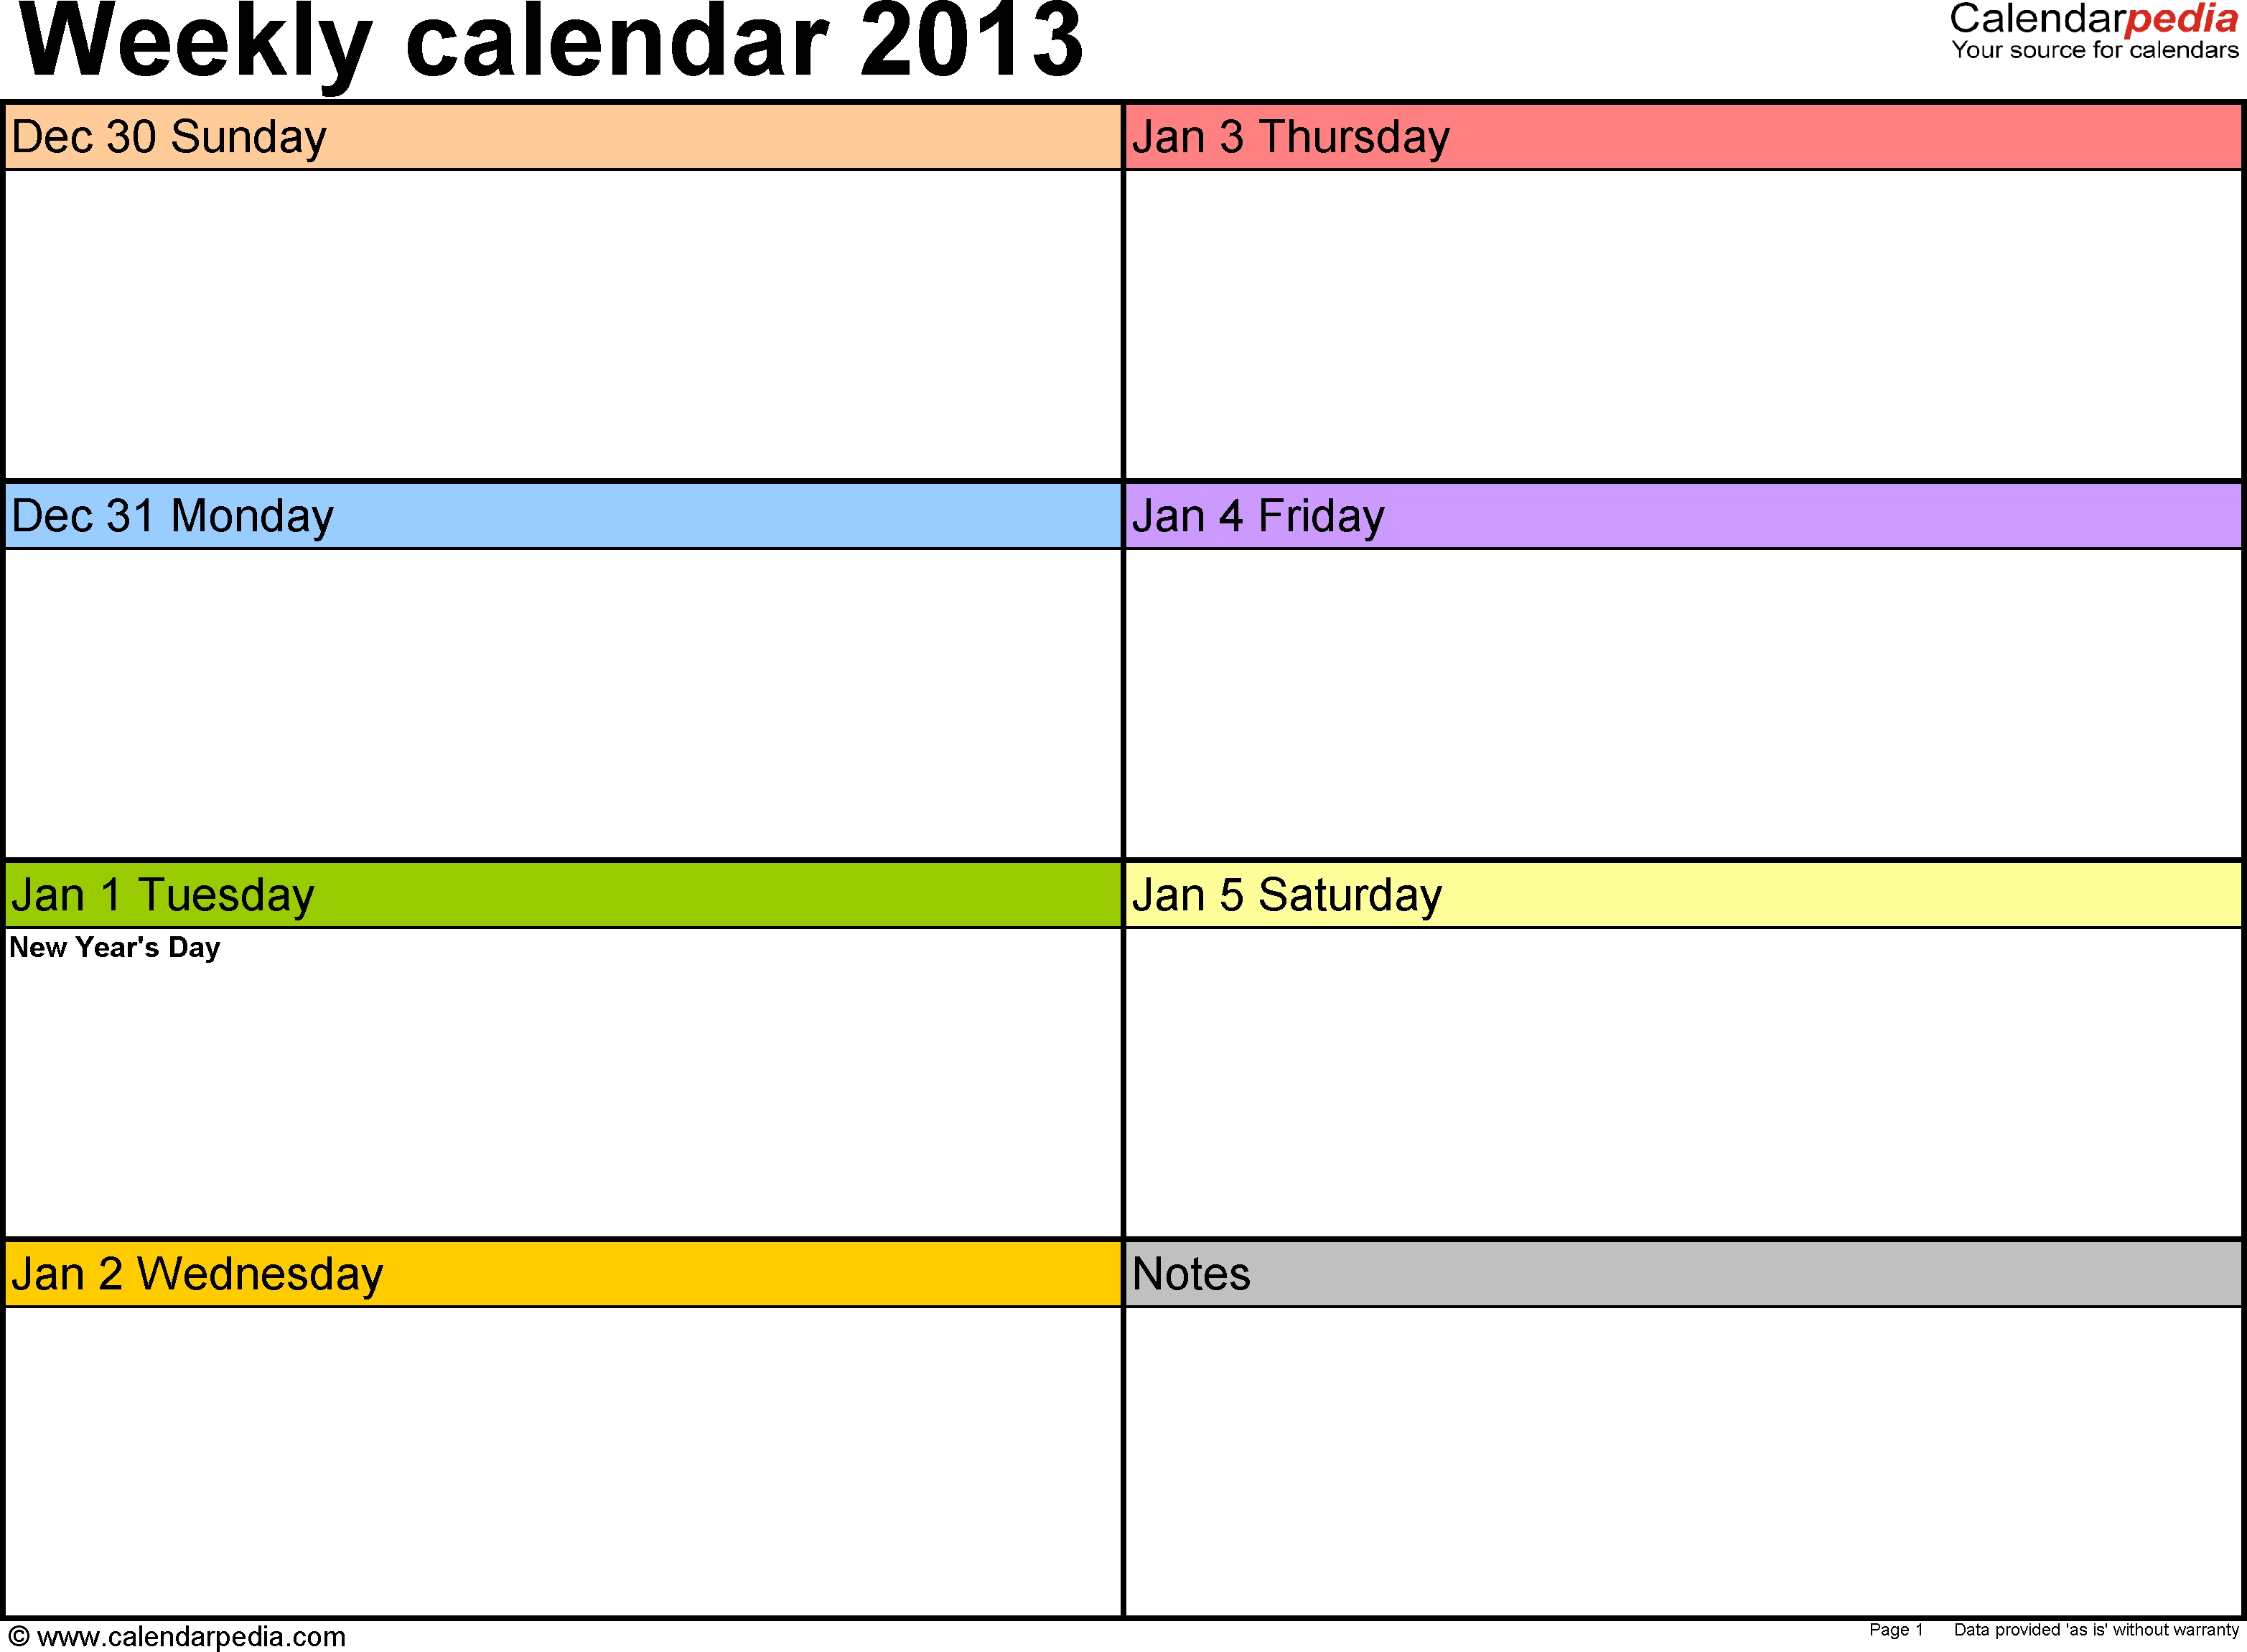 Weekly Calendar 2013 For Word - 4 Free Printable Templates